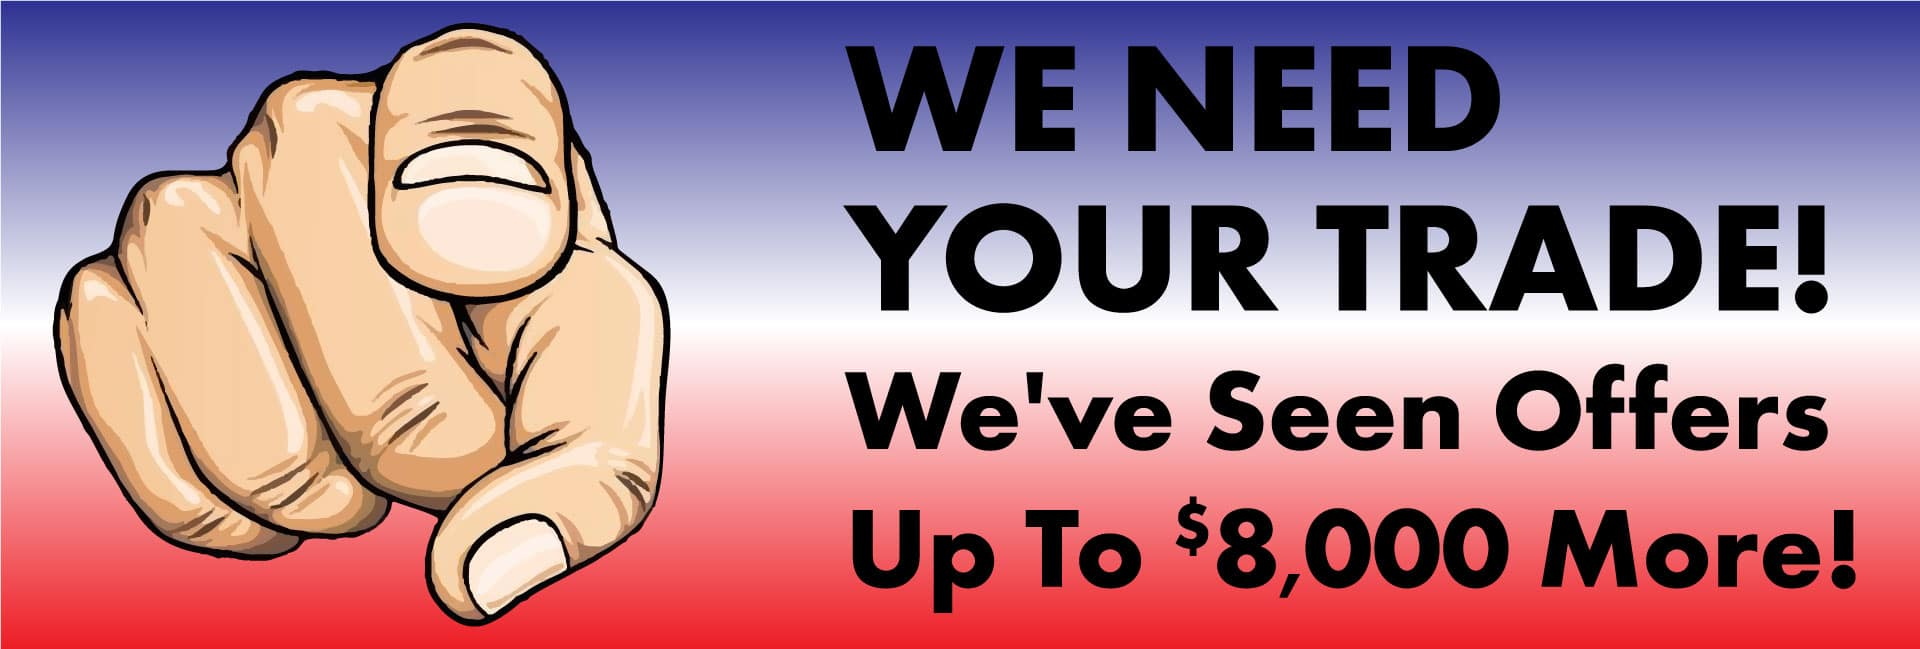 We-Need-Your-Trade_Website-Banner fmss